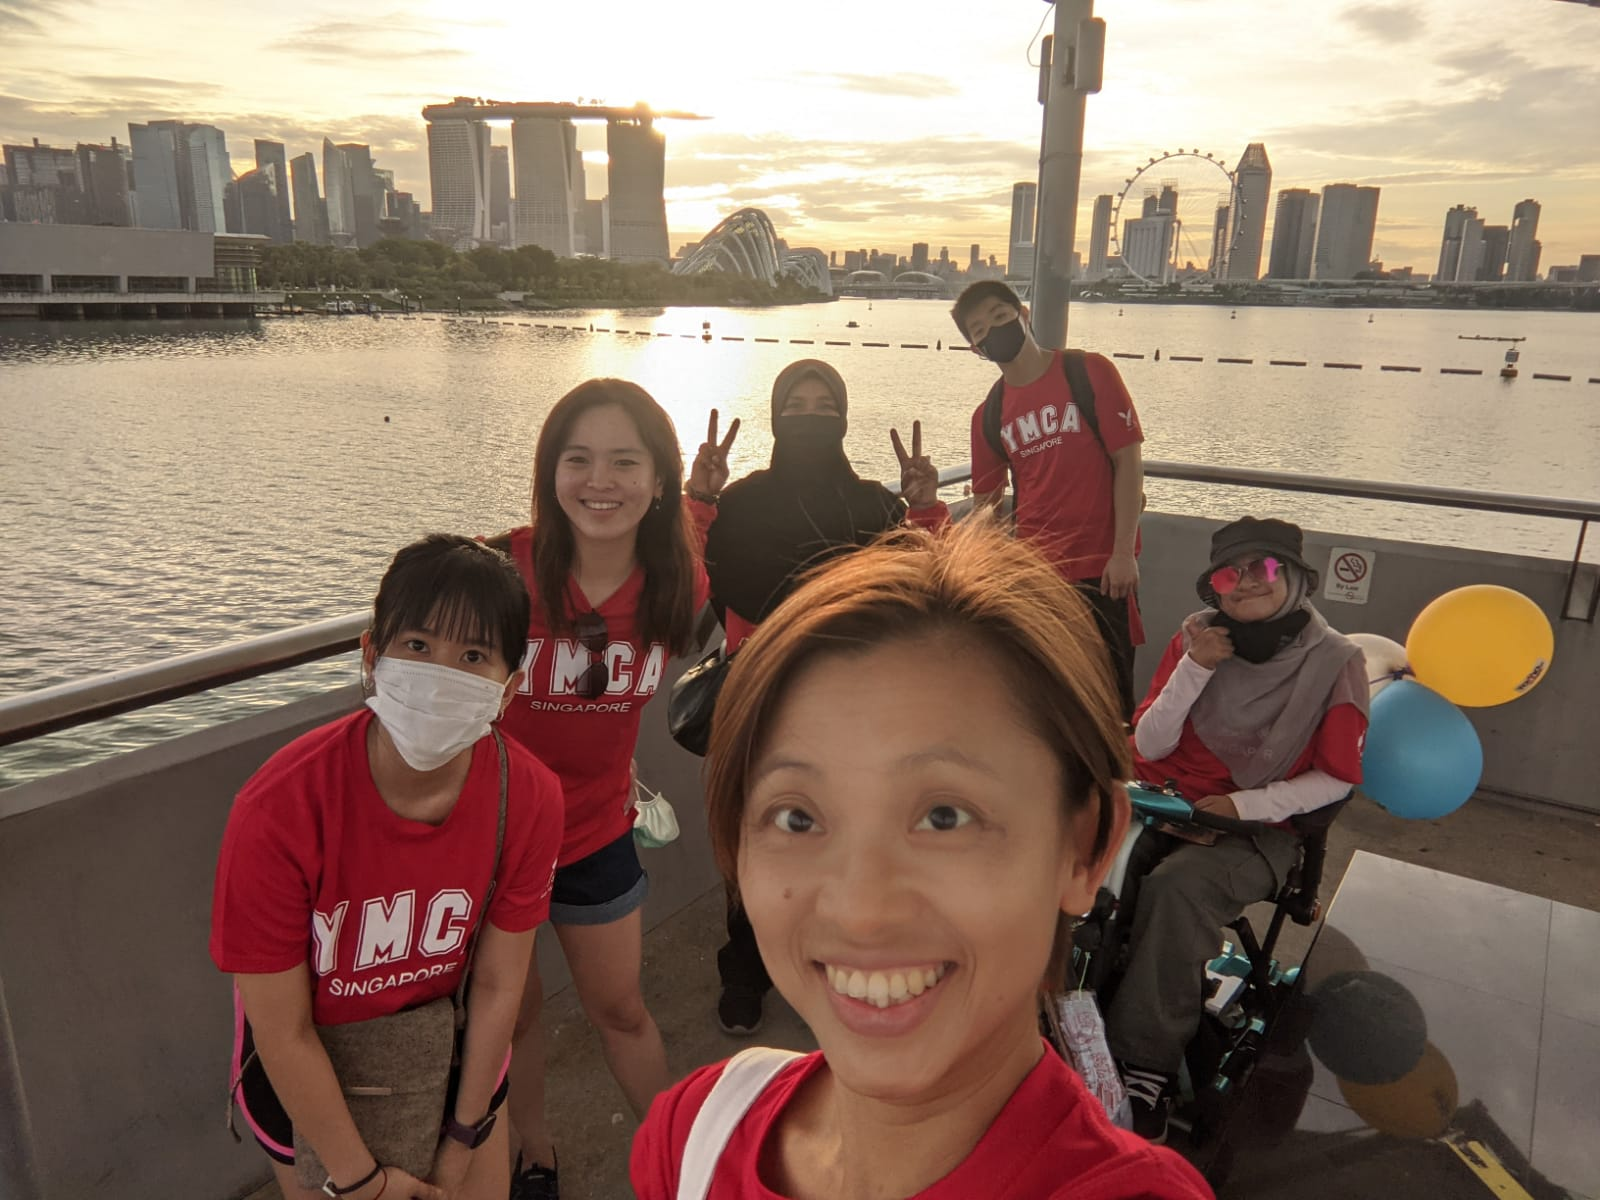 A team consisting of Hwee Hoon, Ana, Mei Wah, Chuan Zheng, Sabrina & her mum smiling into the camera with a beautiful sunset in the background.